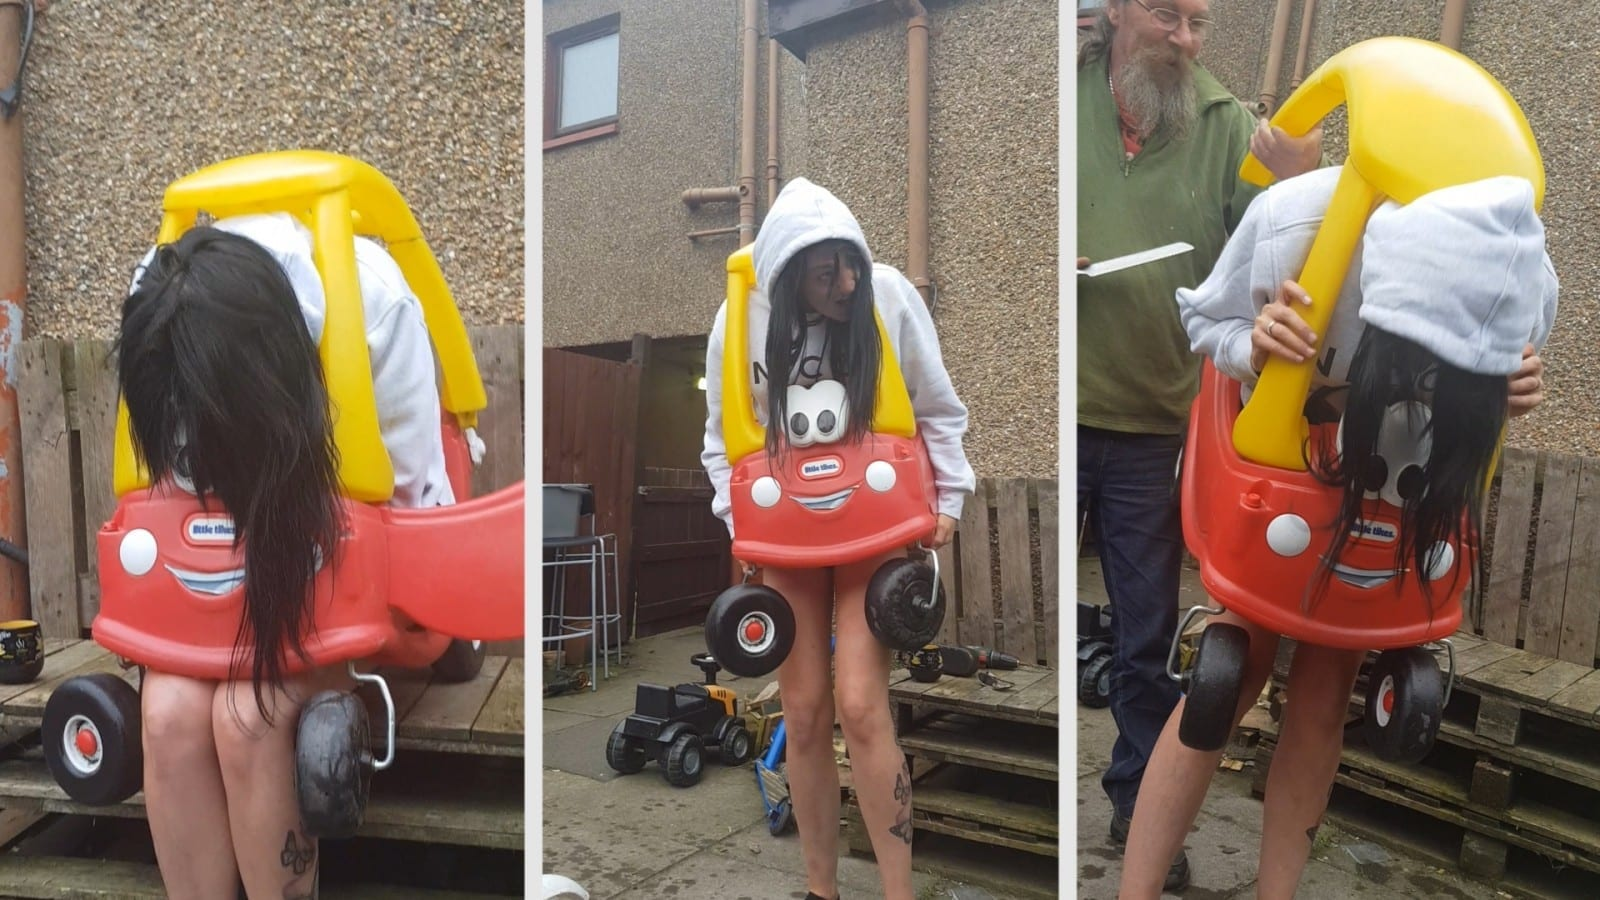 Woman Got Stuck In A Children's Toy Car – And Had To Be Cut Out Using A Bread Knife